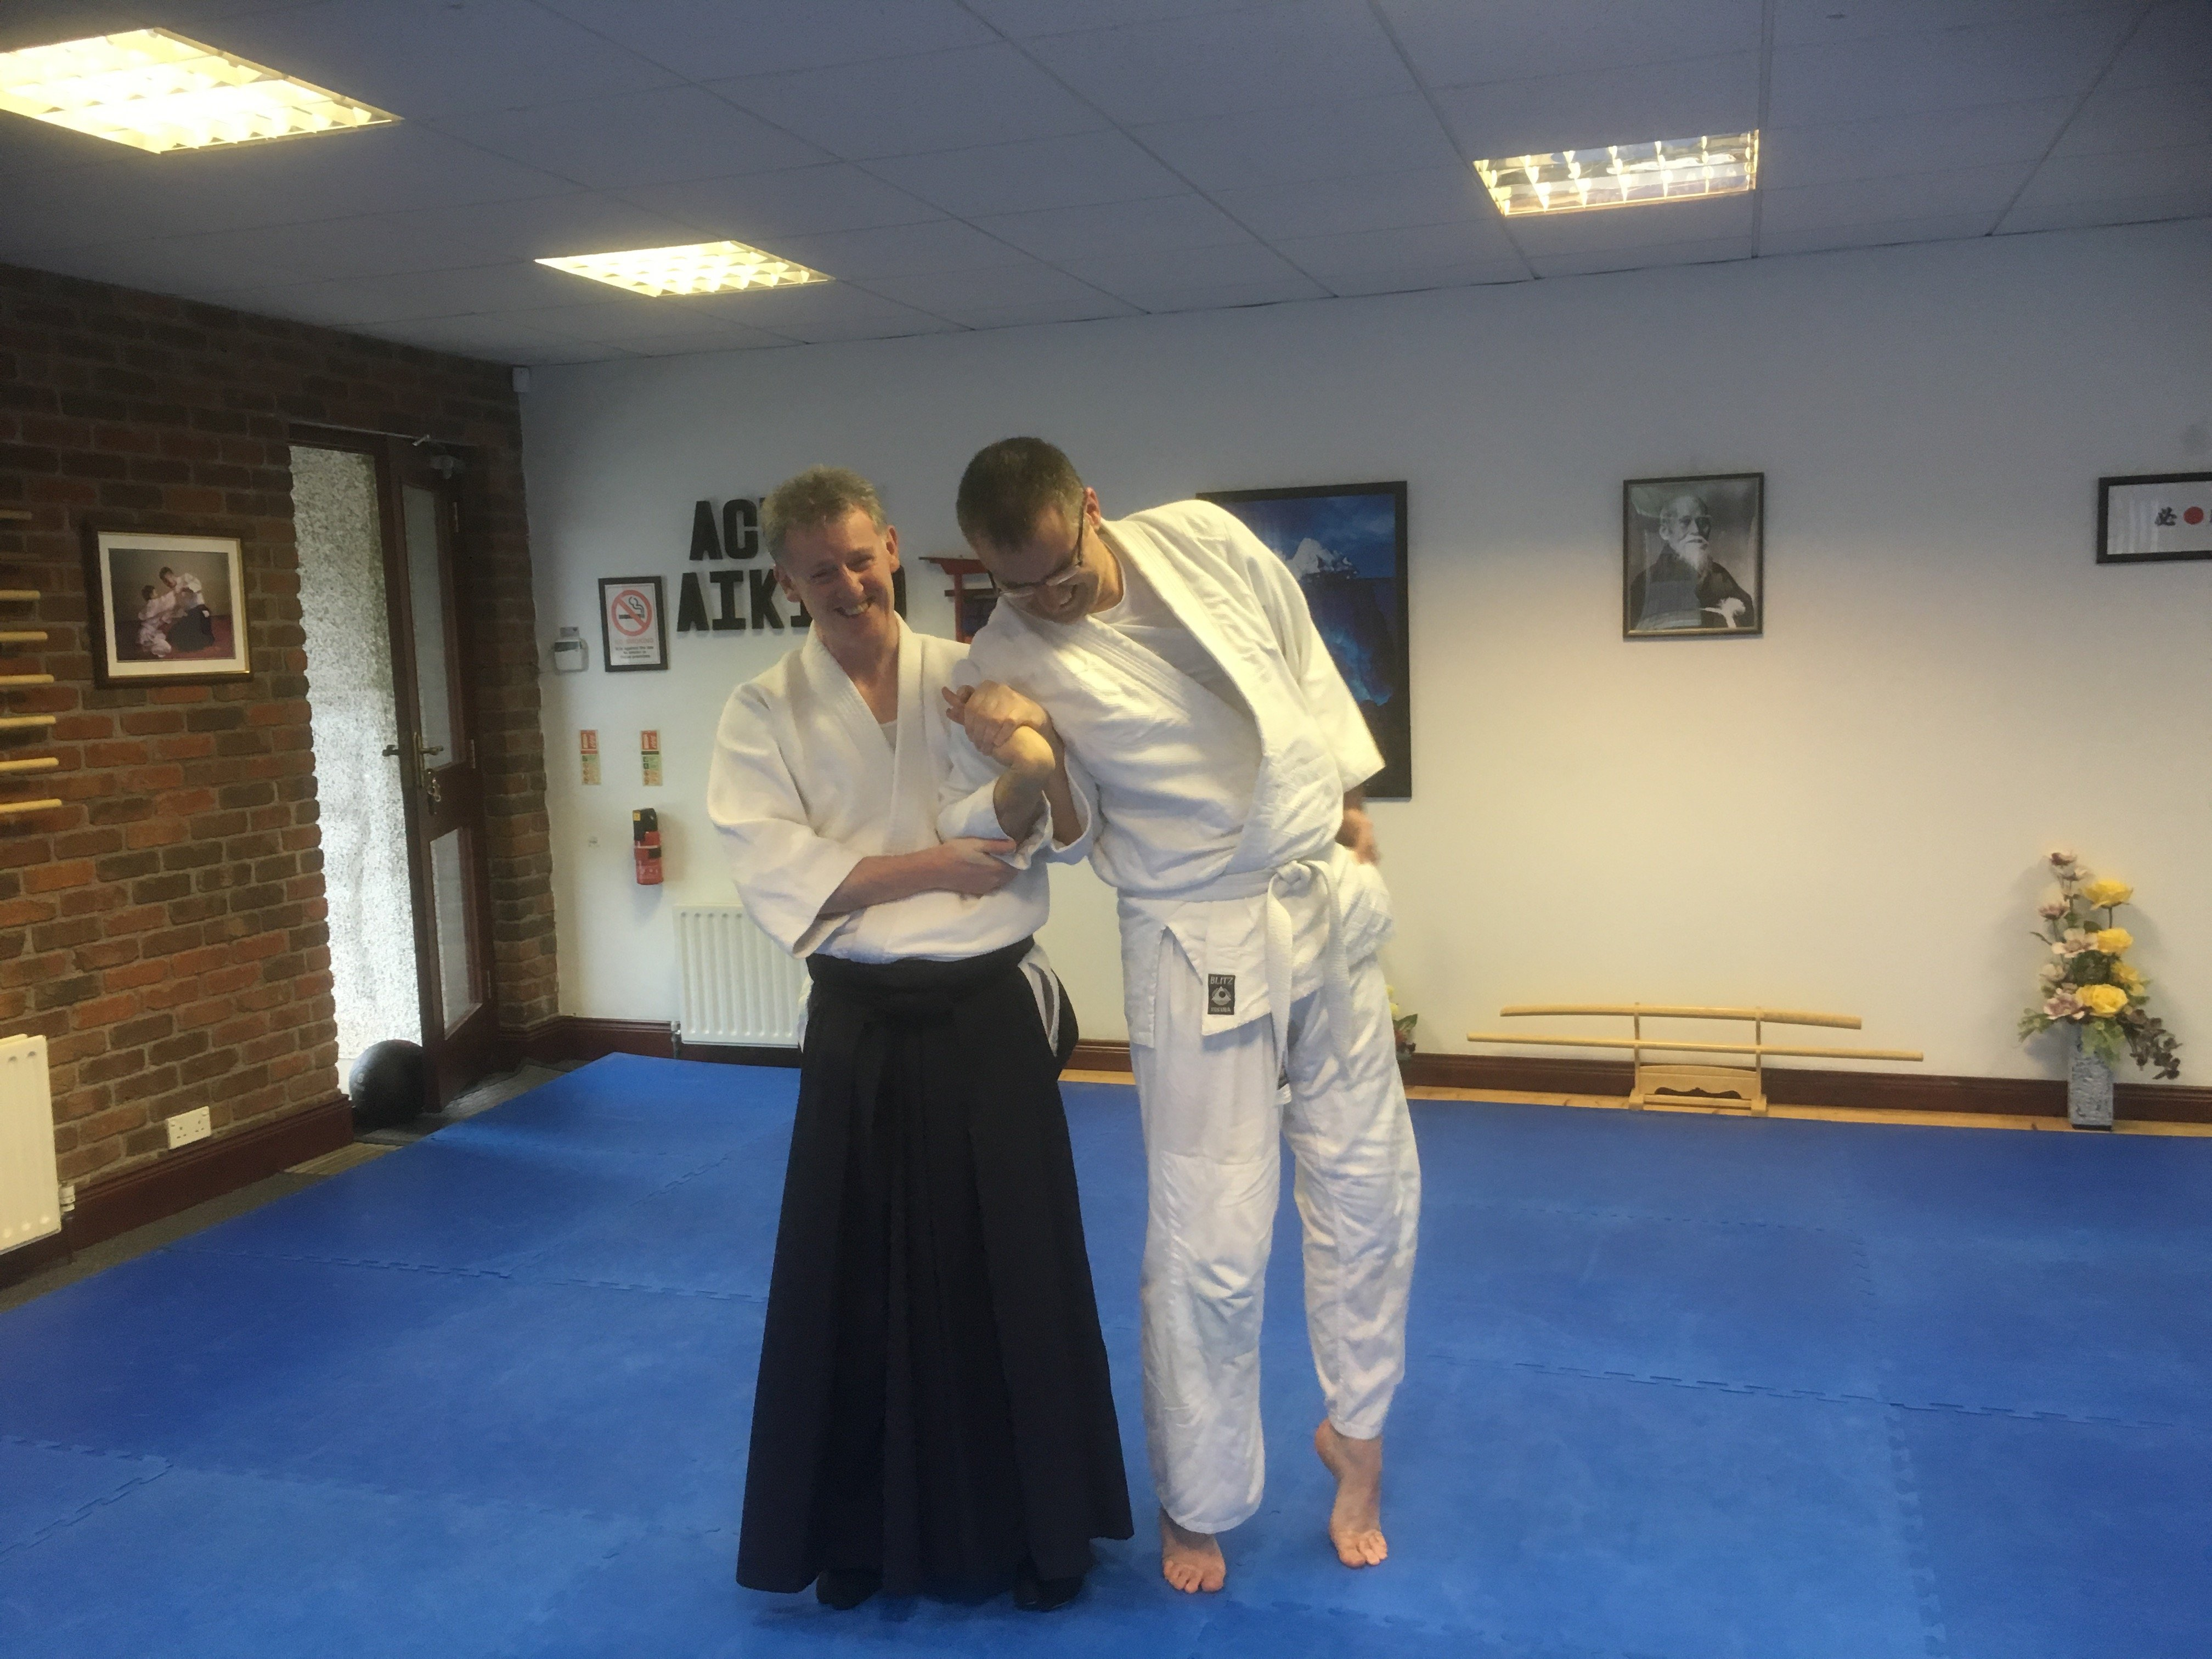 Martin and student practicing aikido